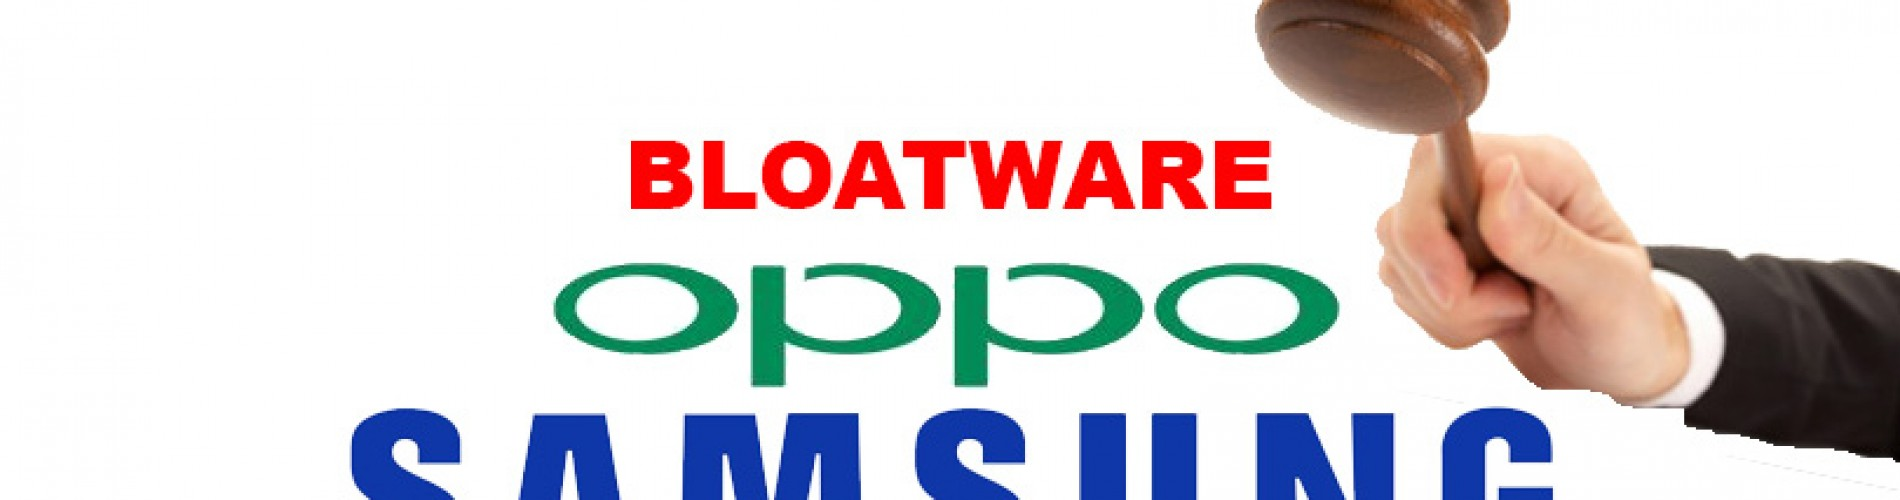 Samsung and Oppo challenged in court over bloatware